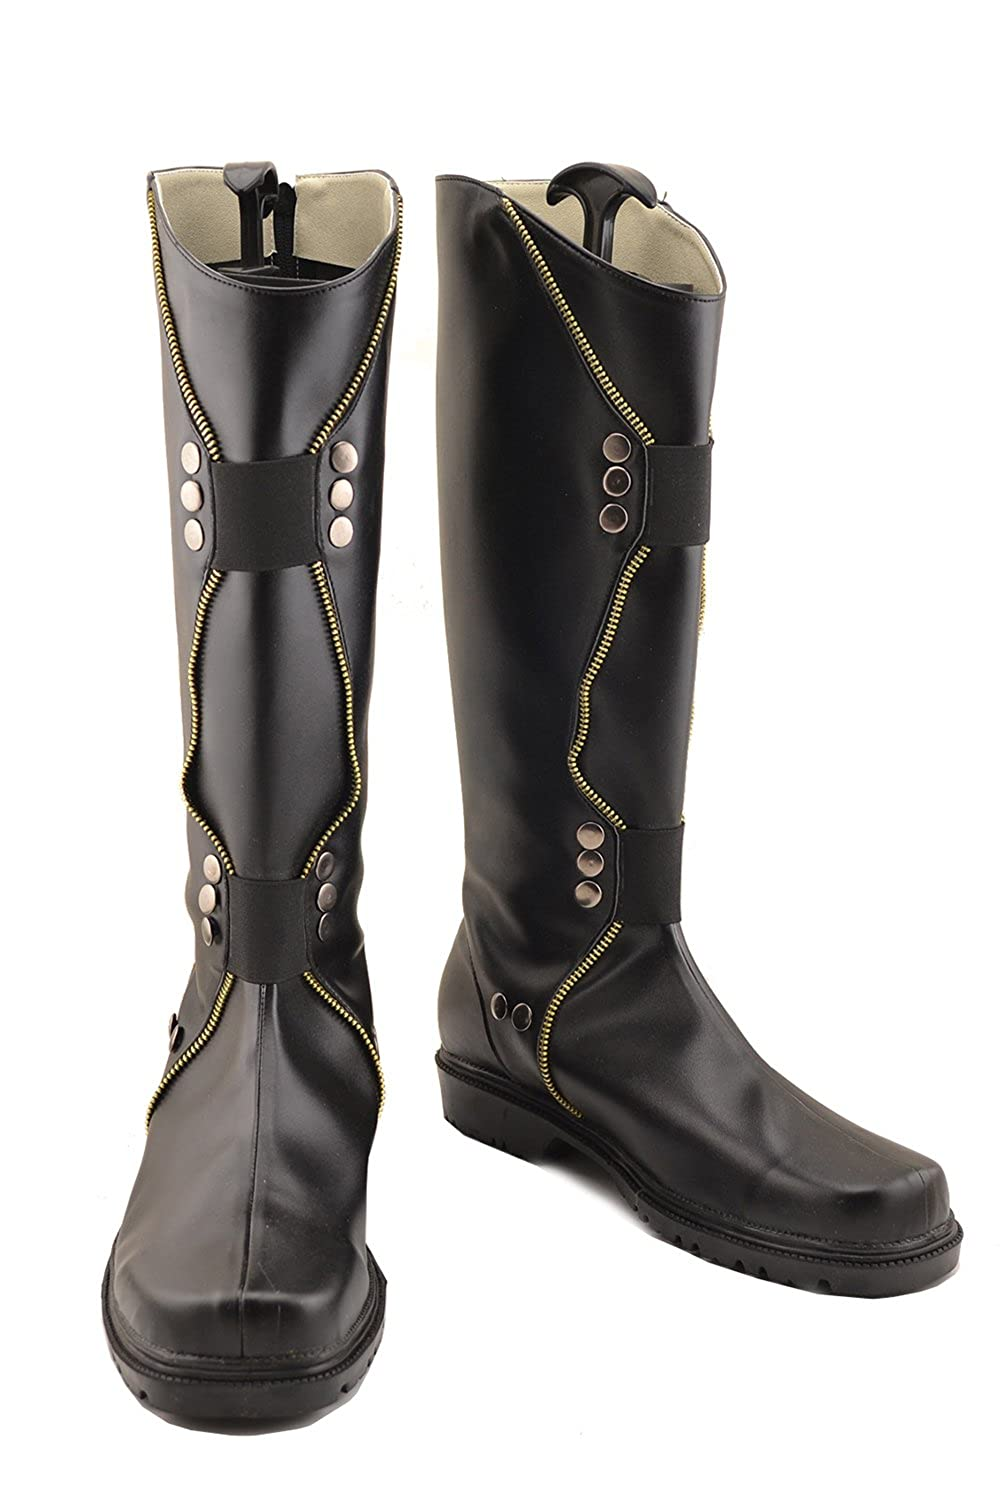 Hotwinds Loki Movie Costume Boots Shoes Men Black Thigh-Boots Cosplay Accessories